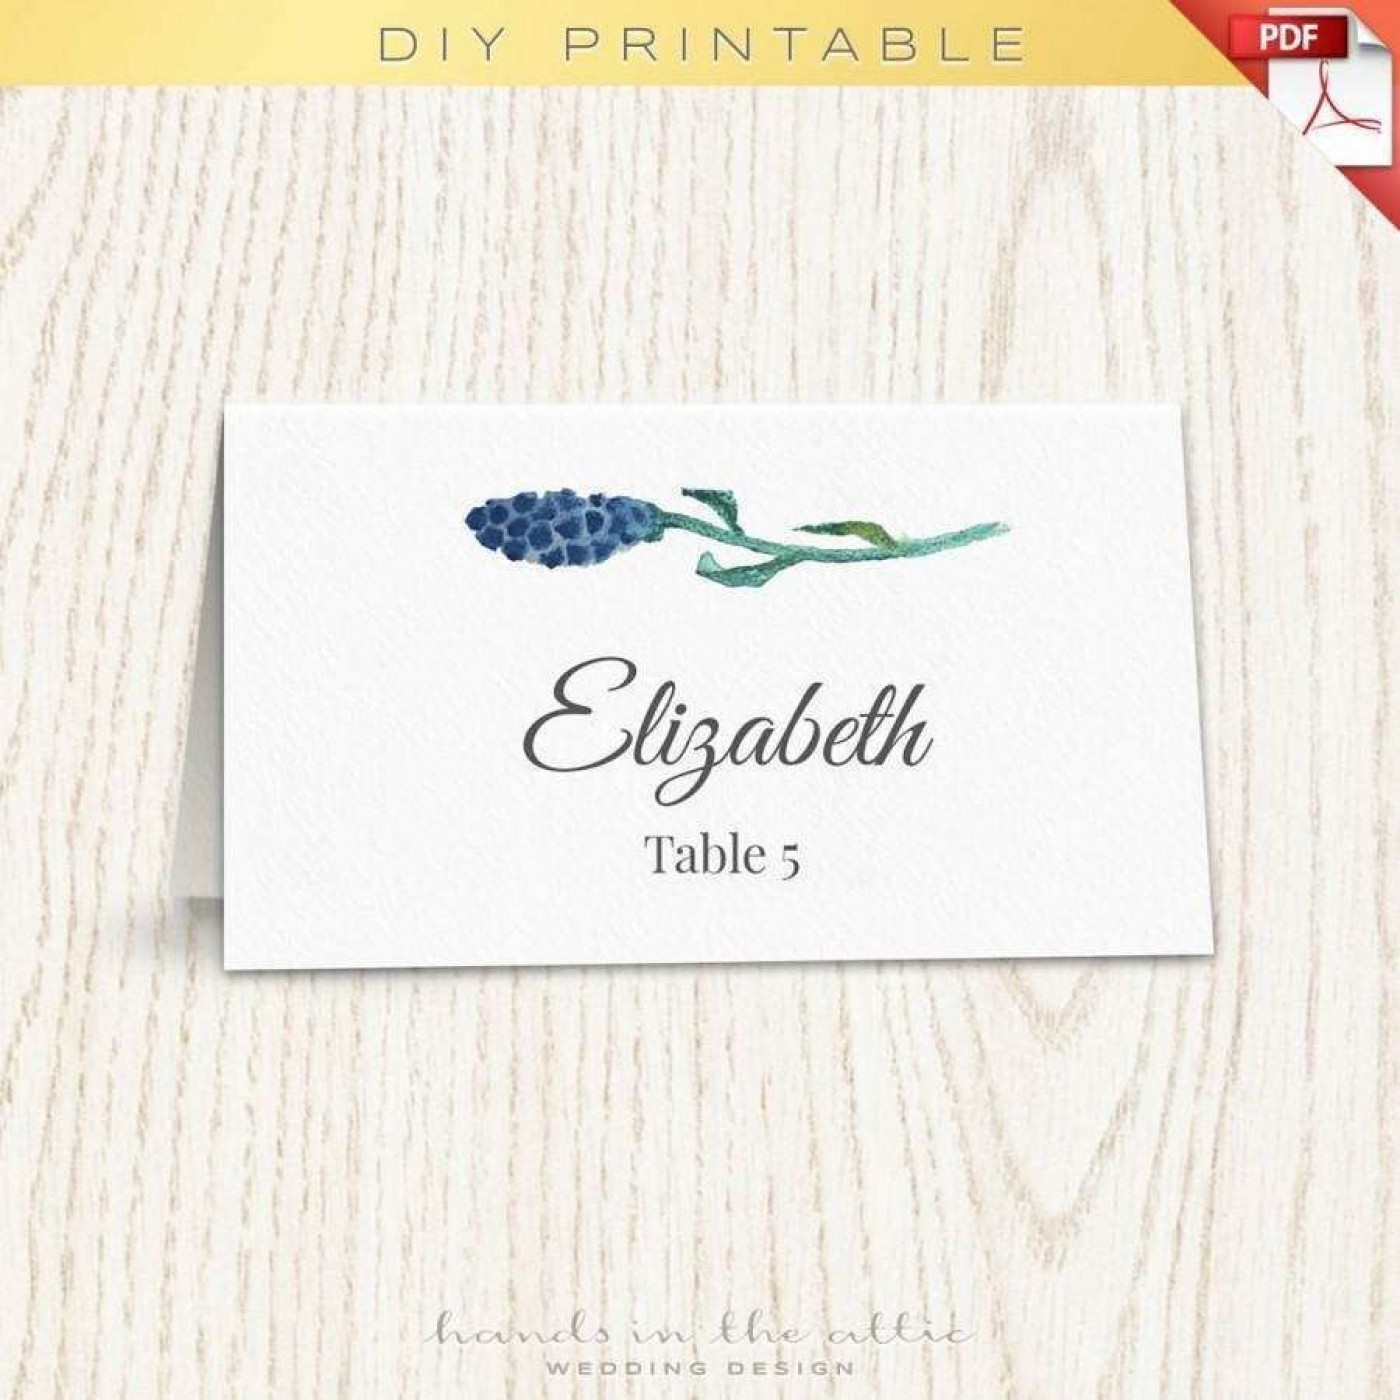 000 Incredible Wedding Name Card Template Concept  Free Download Design Sticker Format1400